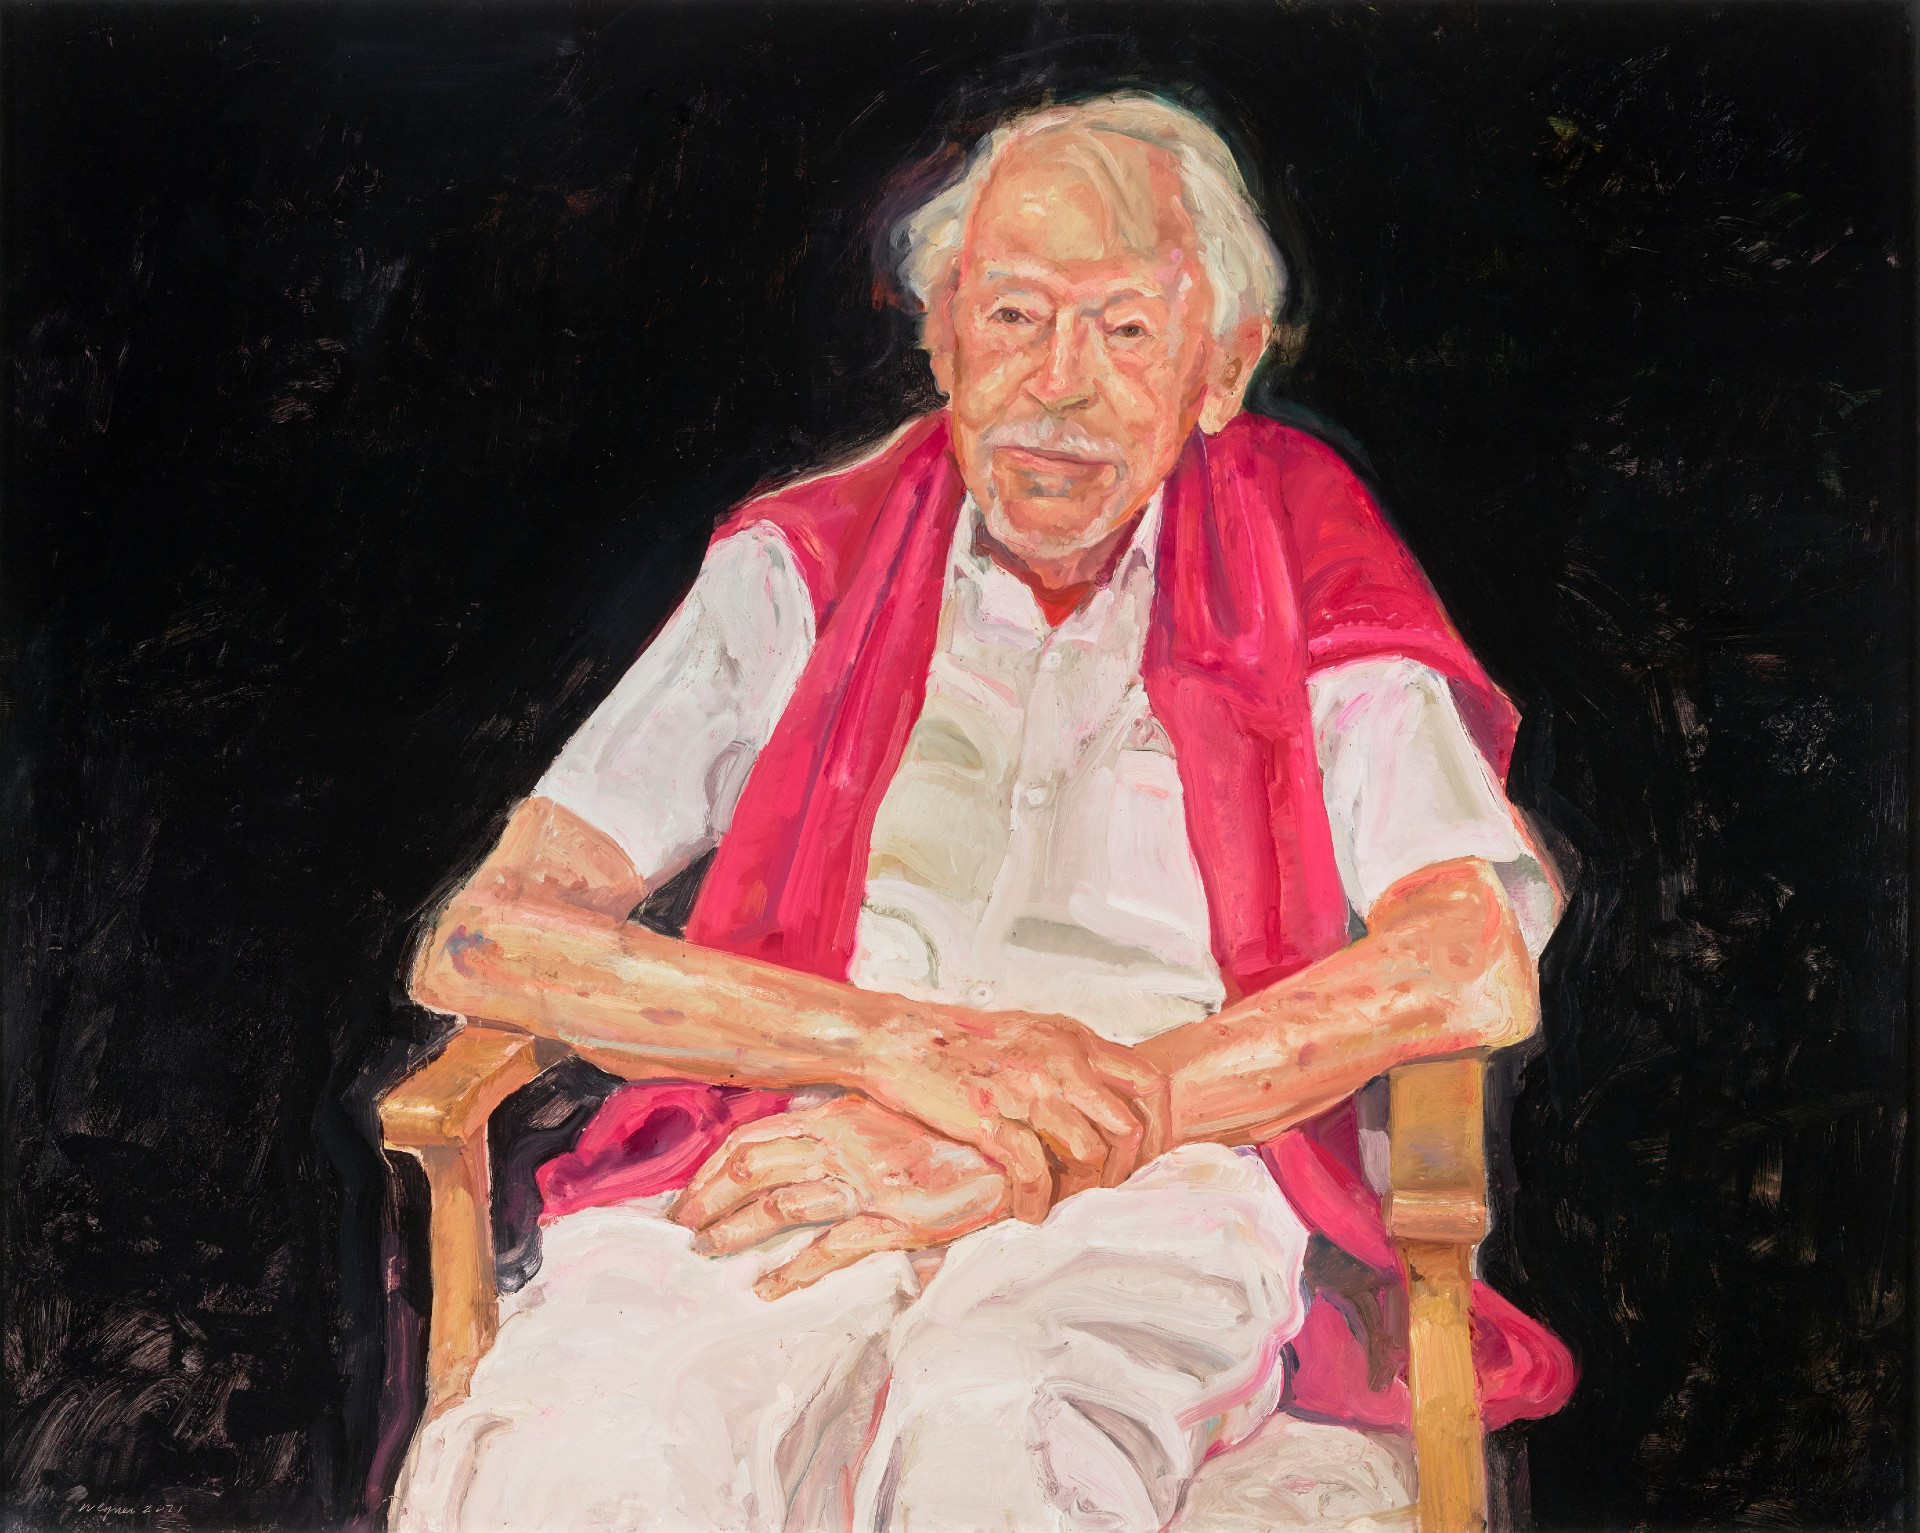 A painting of artist Guy Warren in a cane chair with his arms crossed in his lap, with a pink jumper over his shoulders